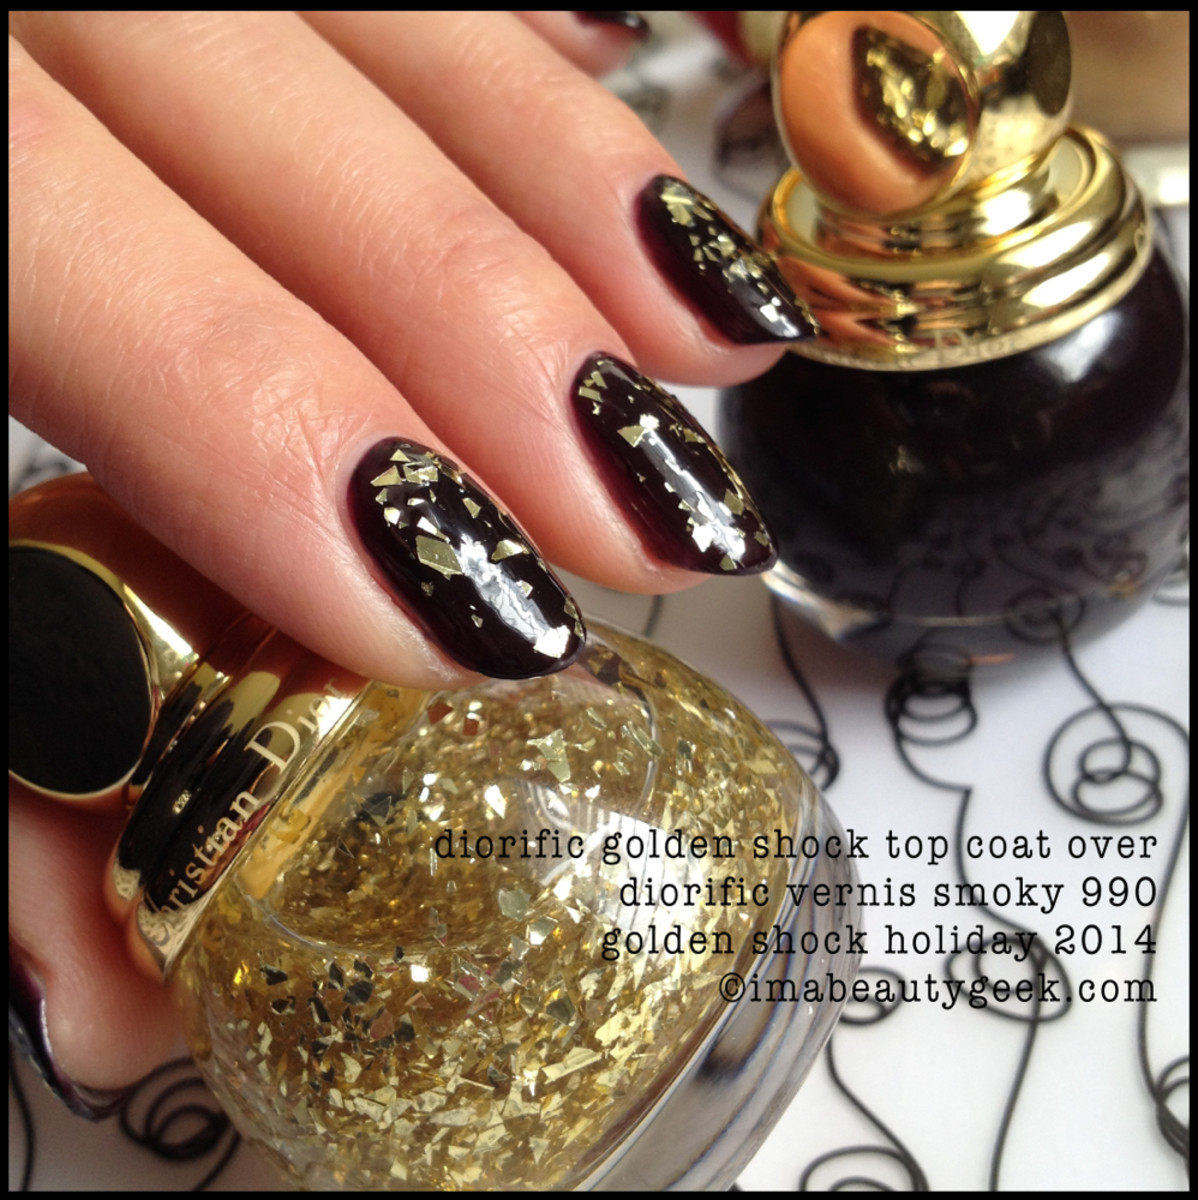 Dior Golden Shock 001 over Diorific Vernis Smoky Holiday 2014